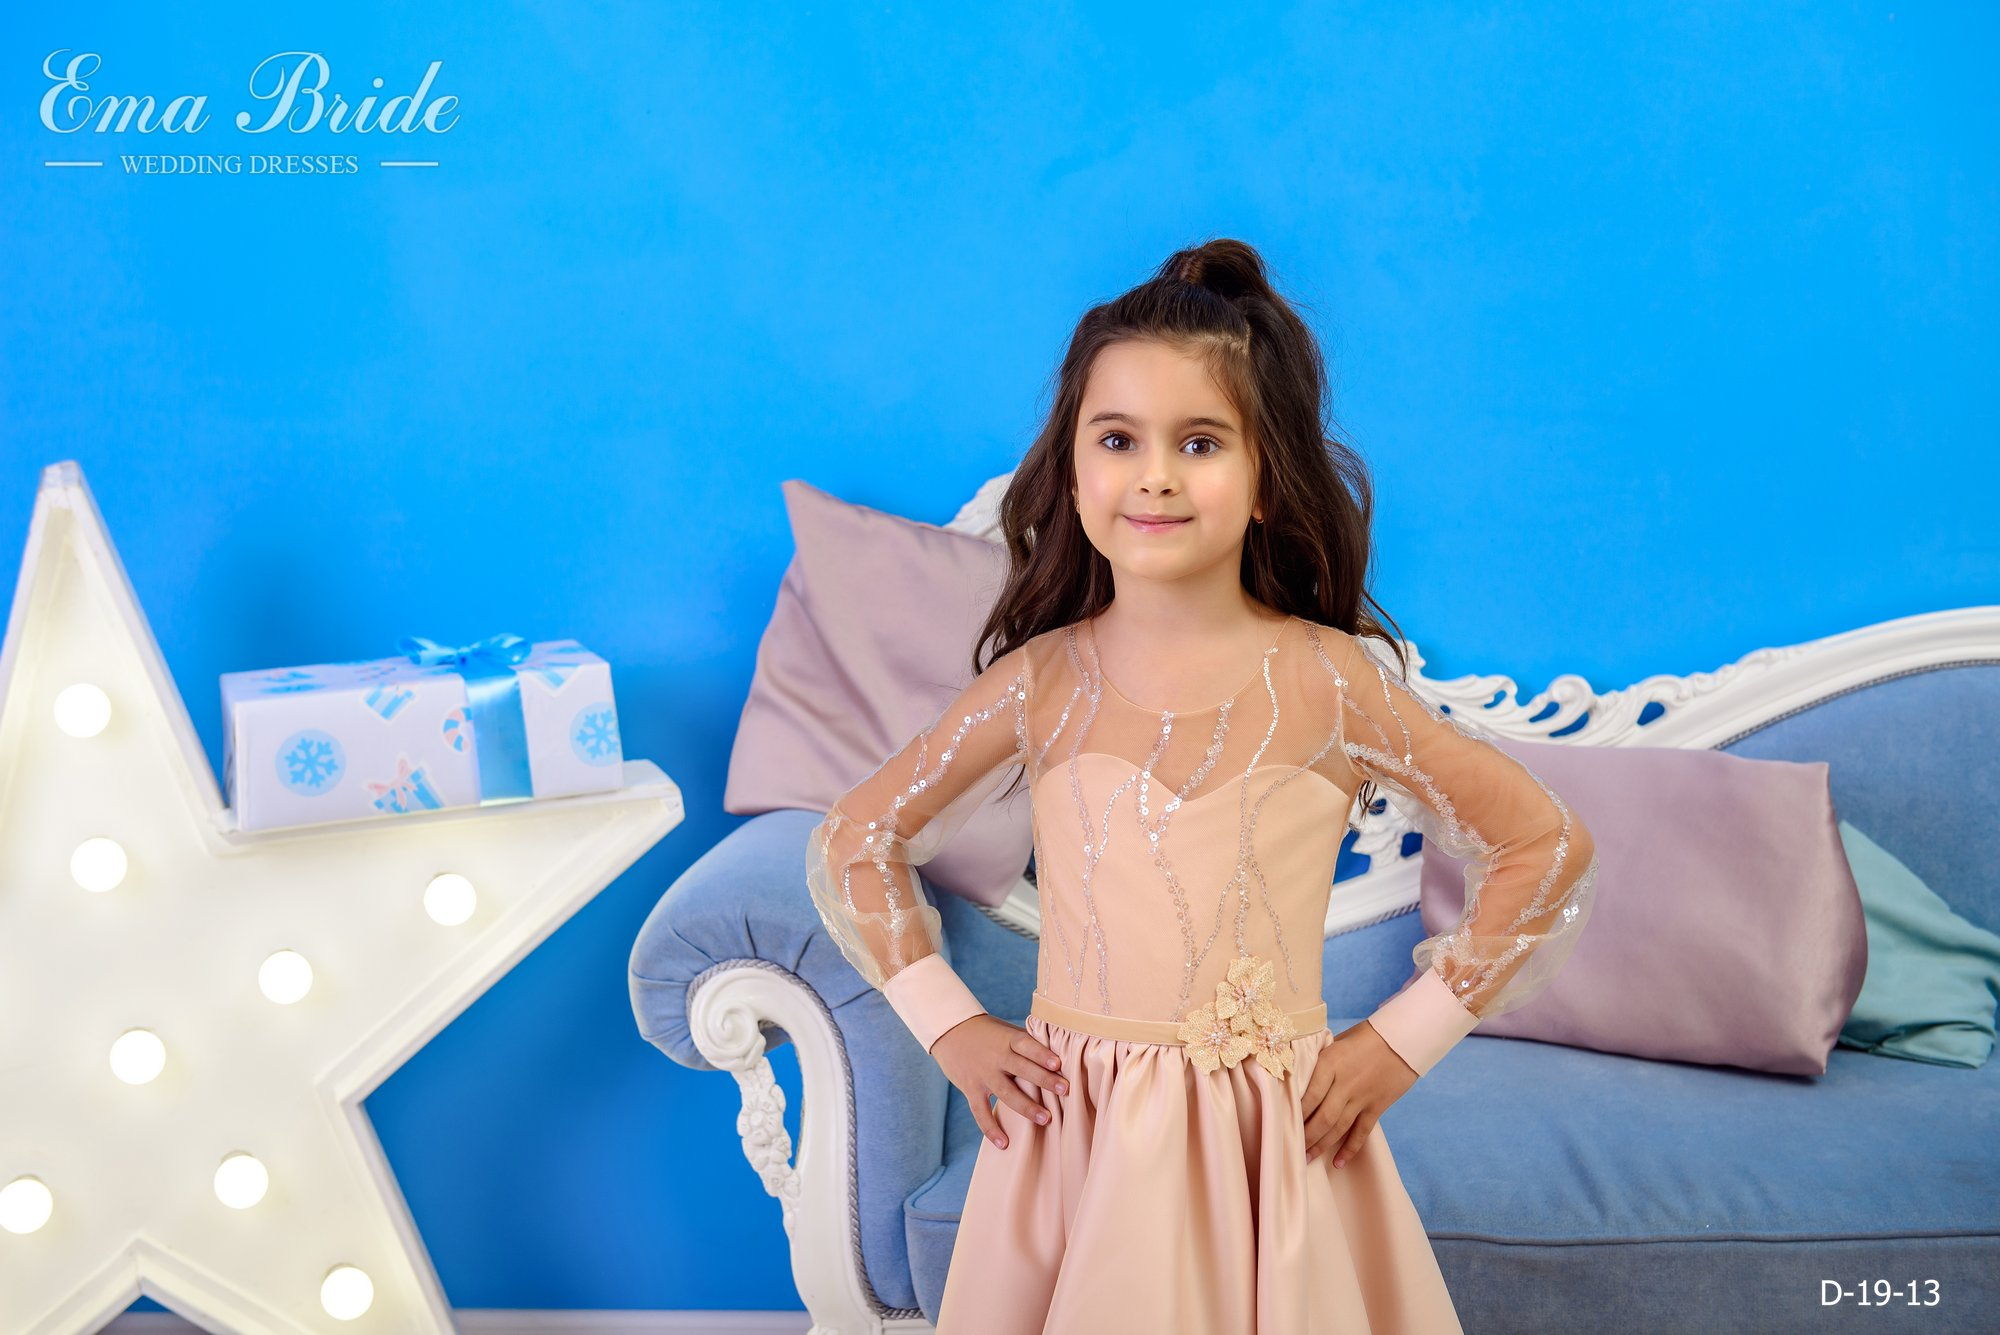 Children's dress by EmaBride D-19-13 2019-2